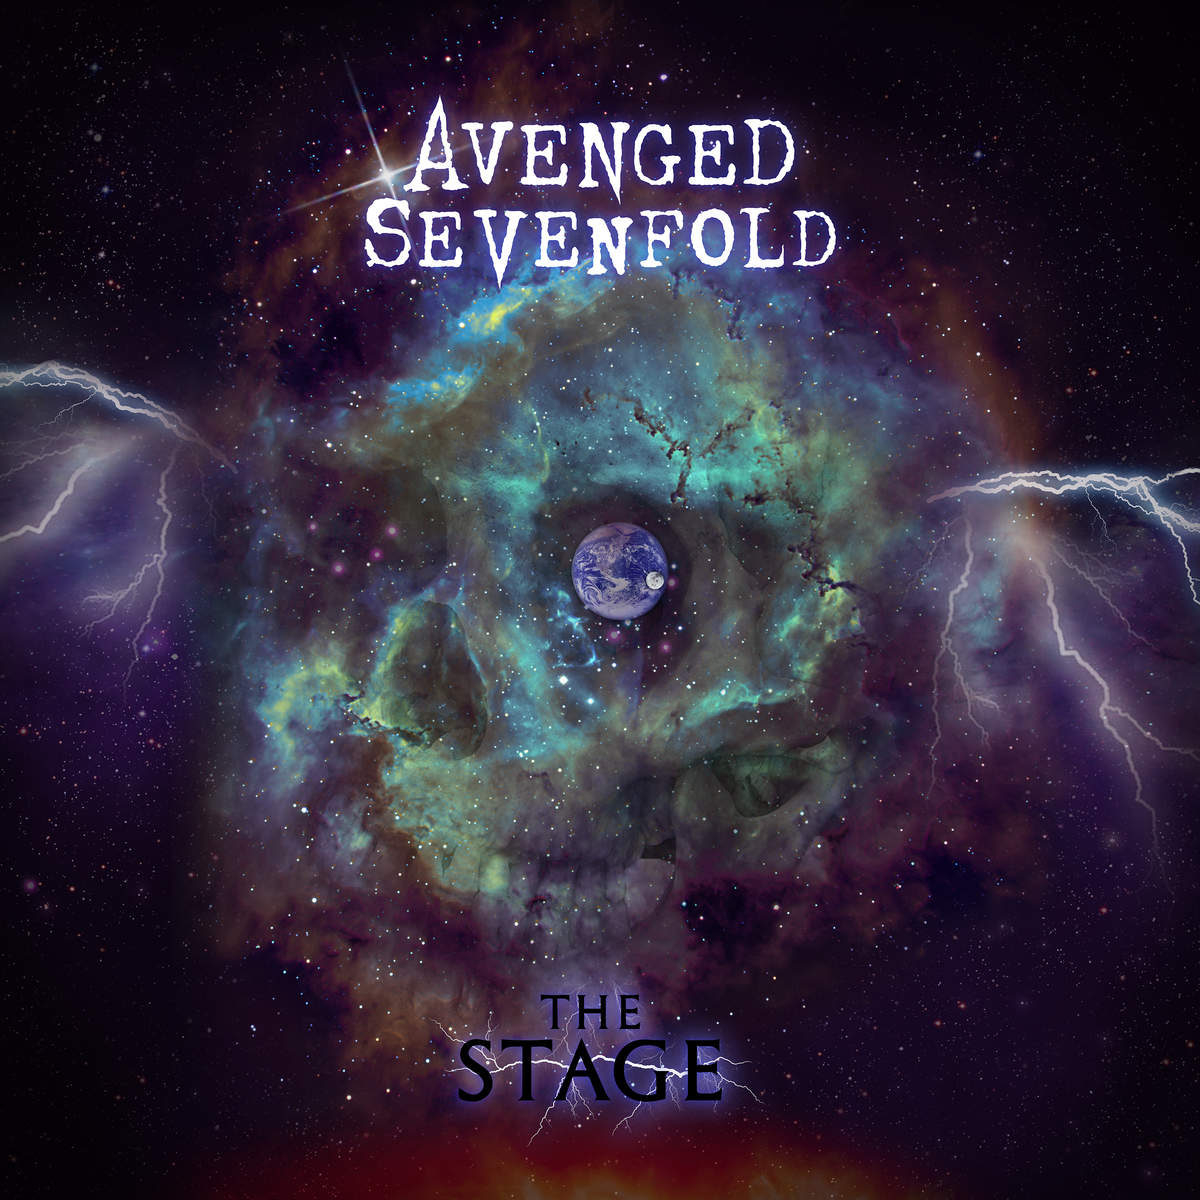 avenged sevenfold the stage mp3 download free